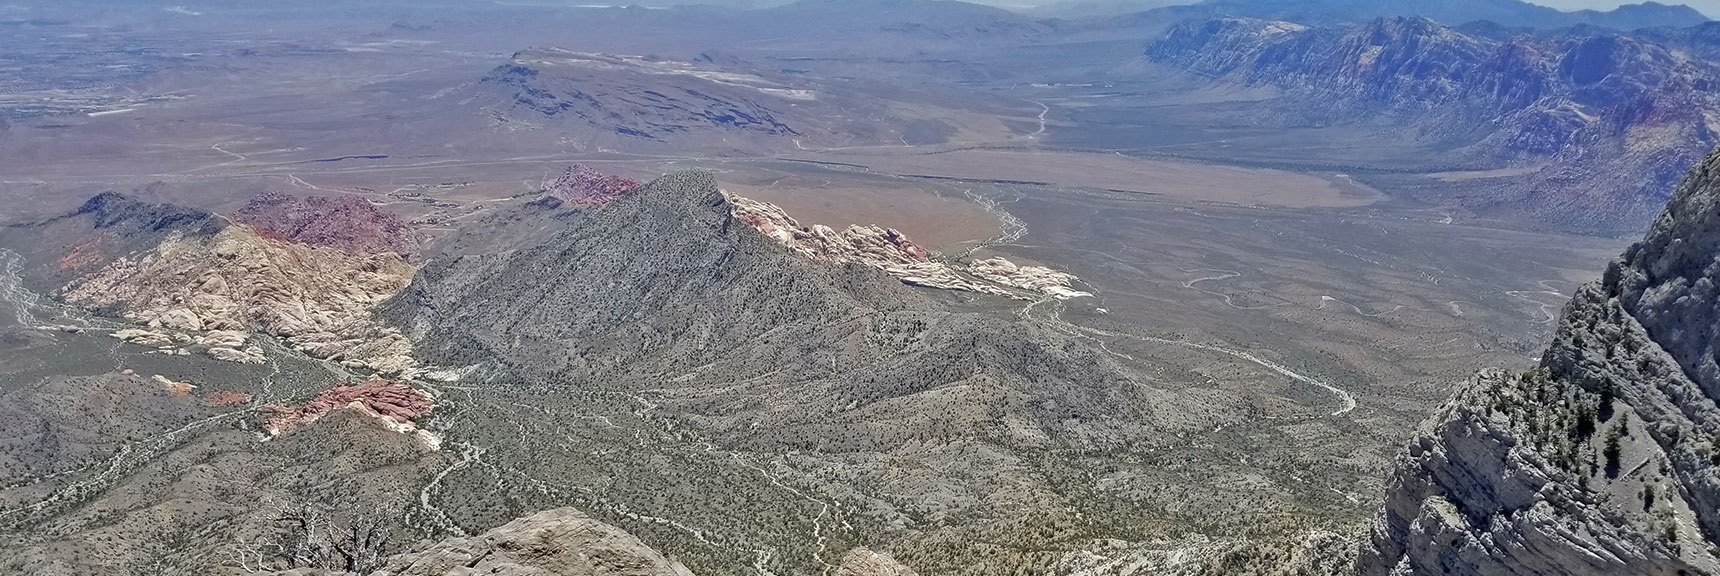 Calico Basin, Turtlehead Peak and Red Rock Canyon from La Madre Mountain Summit | La Madre Mountain Northern Approach, Nevada